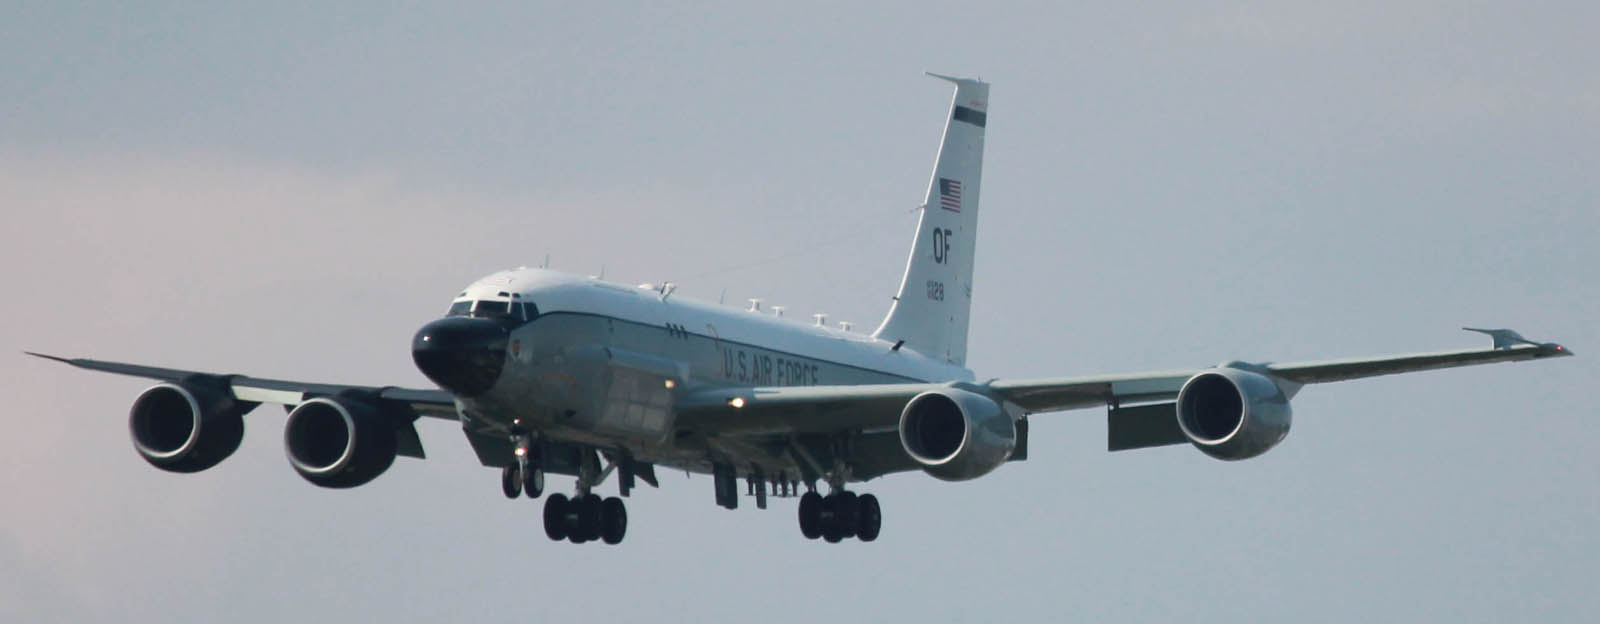 Rc135s120914g594